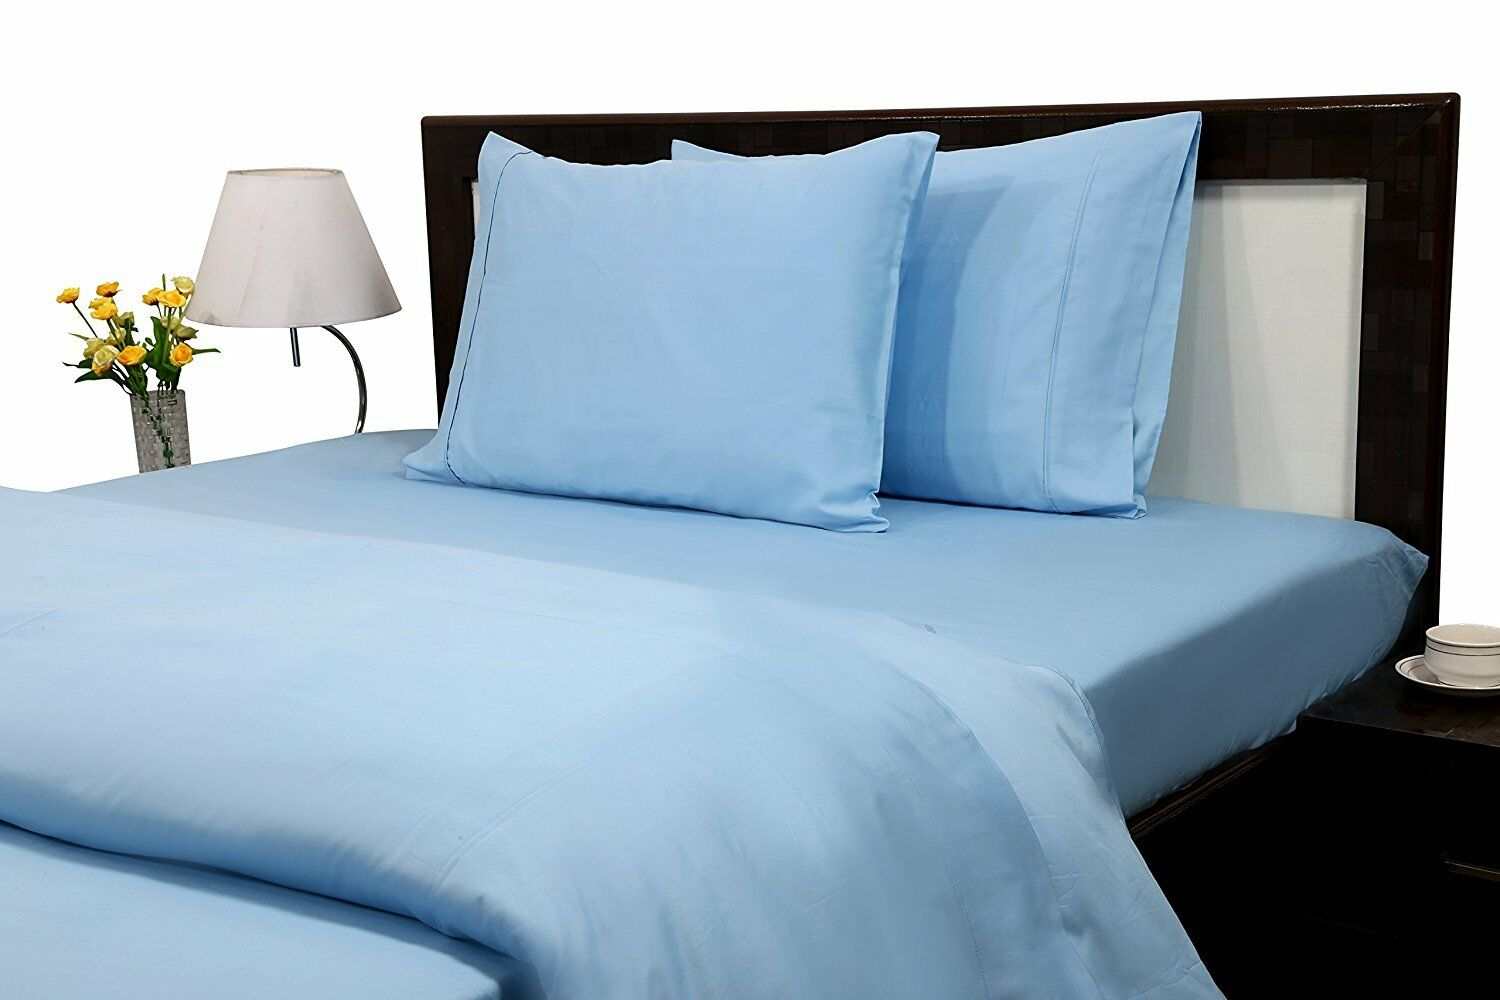 Egyptian Cotton 1 Fitted Sheet & 2 Pillowcase 1000Thread Count light bluee Solid